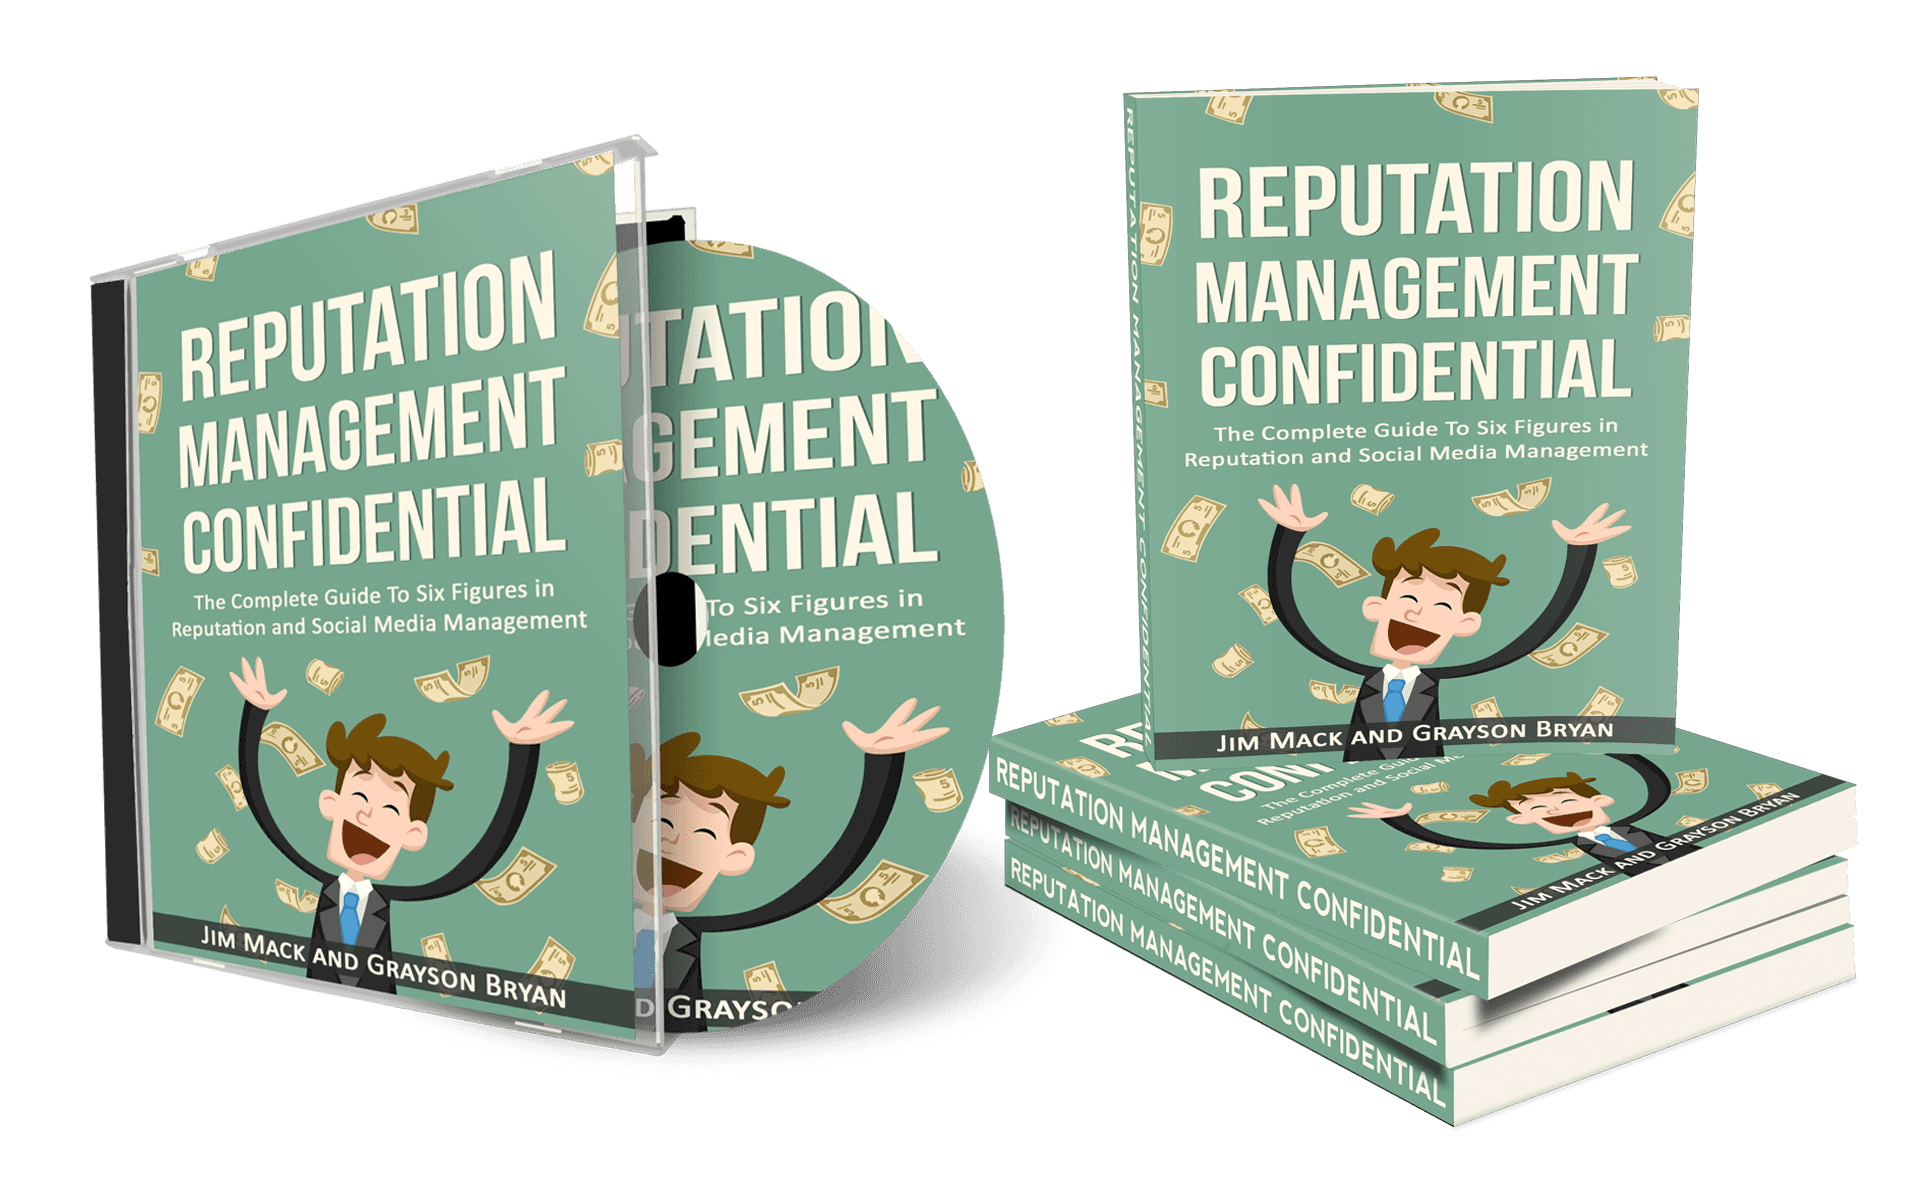 The complete guide to six figures in reputation and social media management.(Reputation Management Confidential)